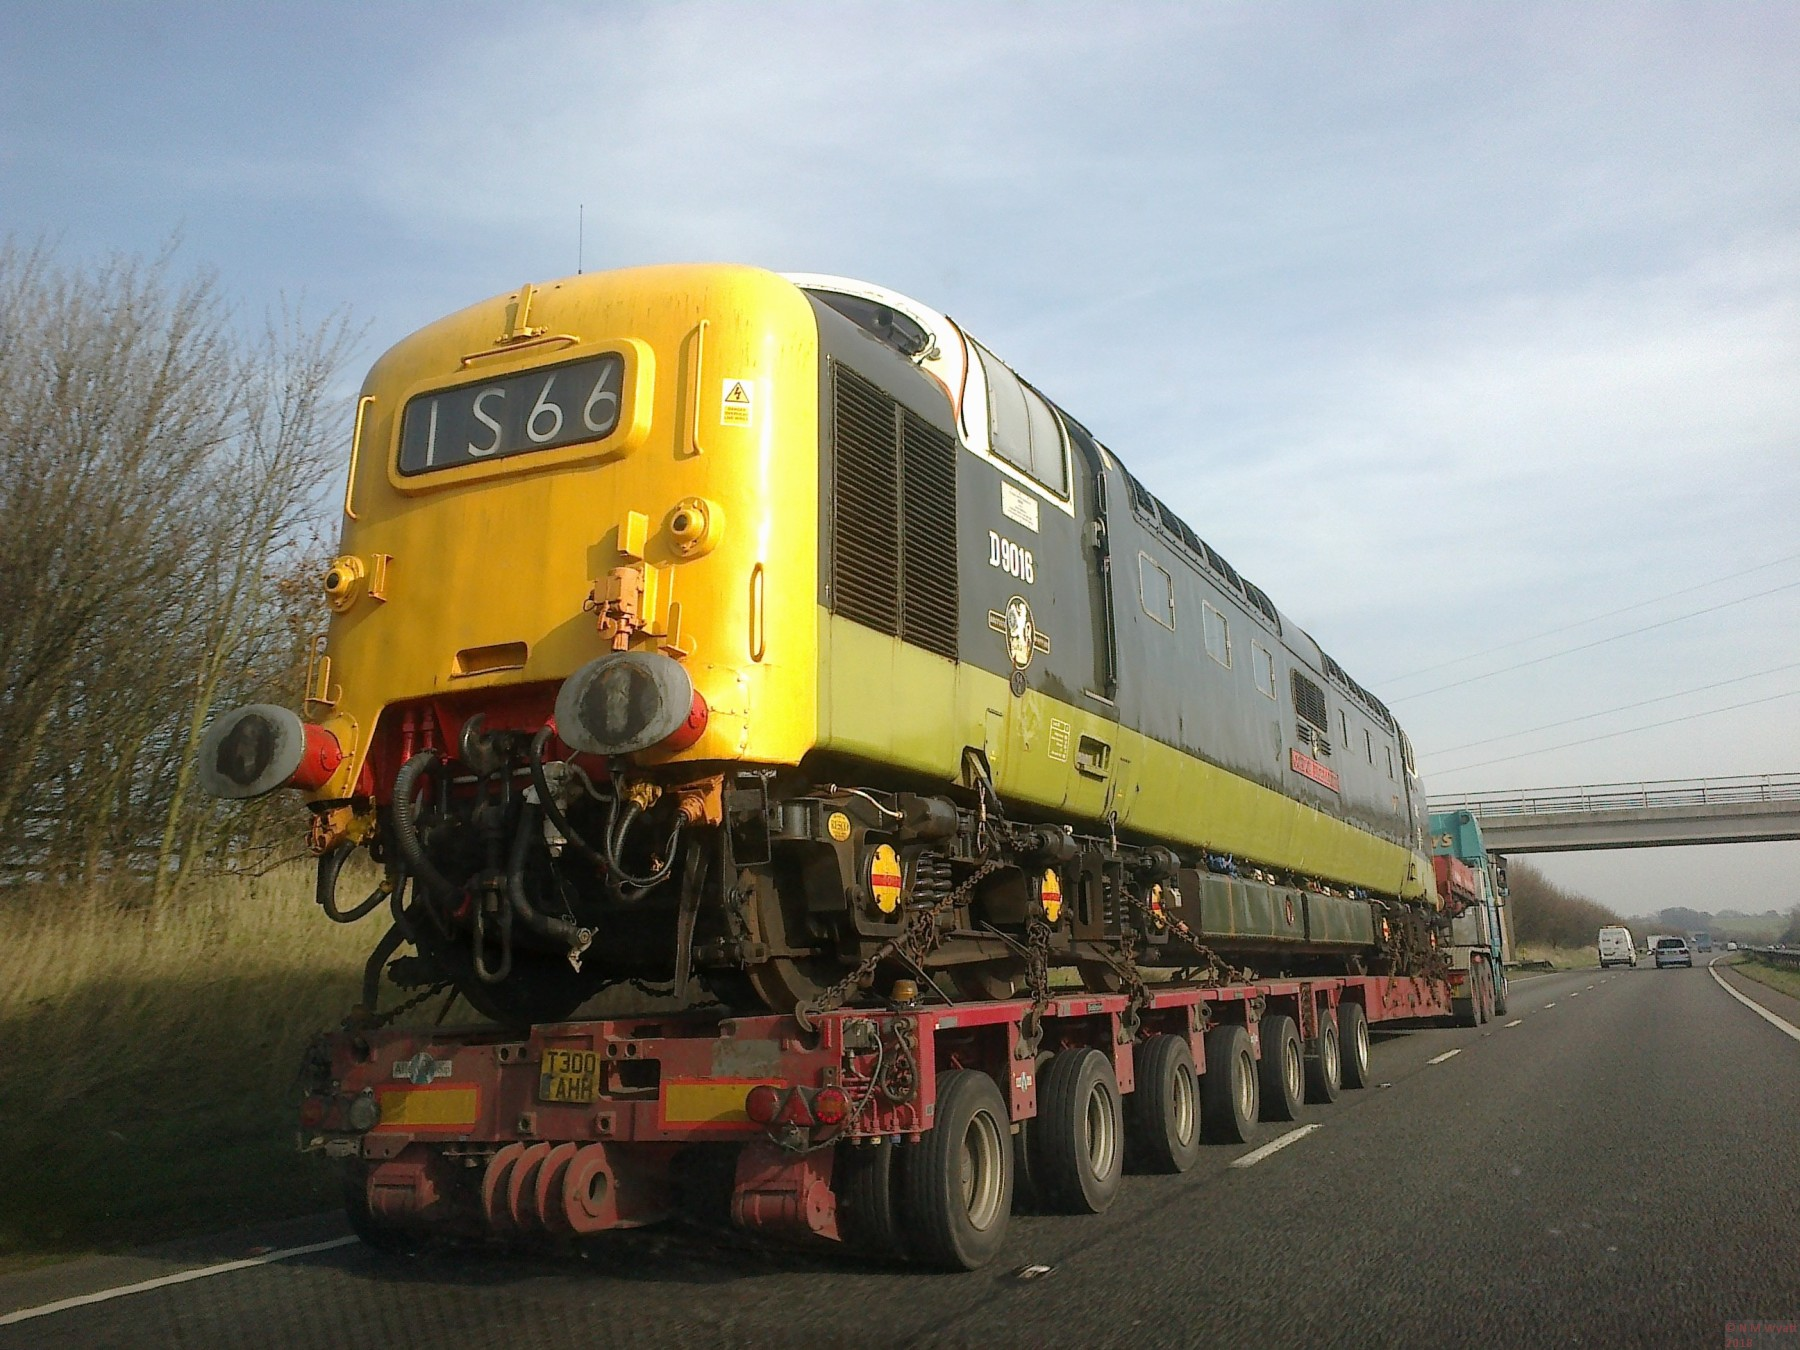 Deltic D9016 in transit on the A50 in 2014